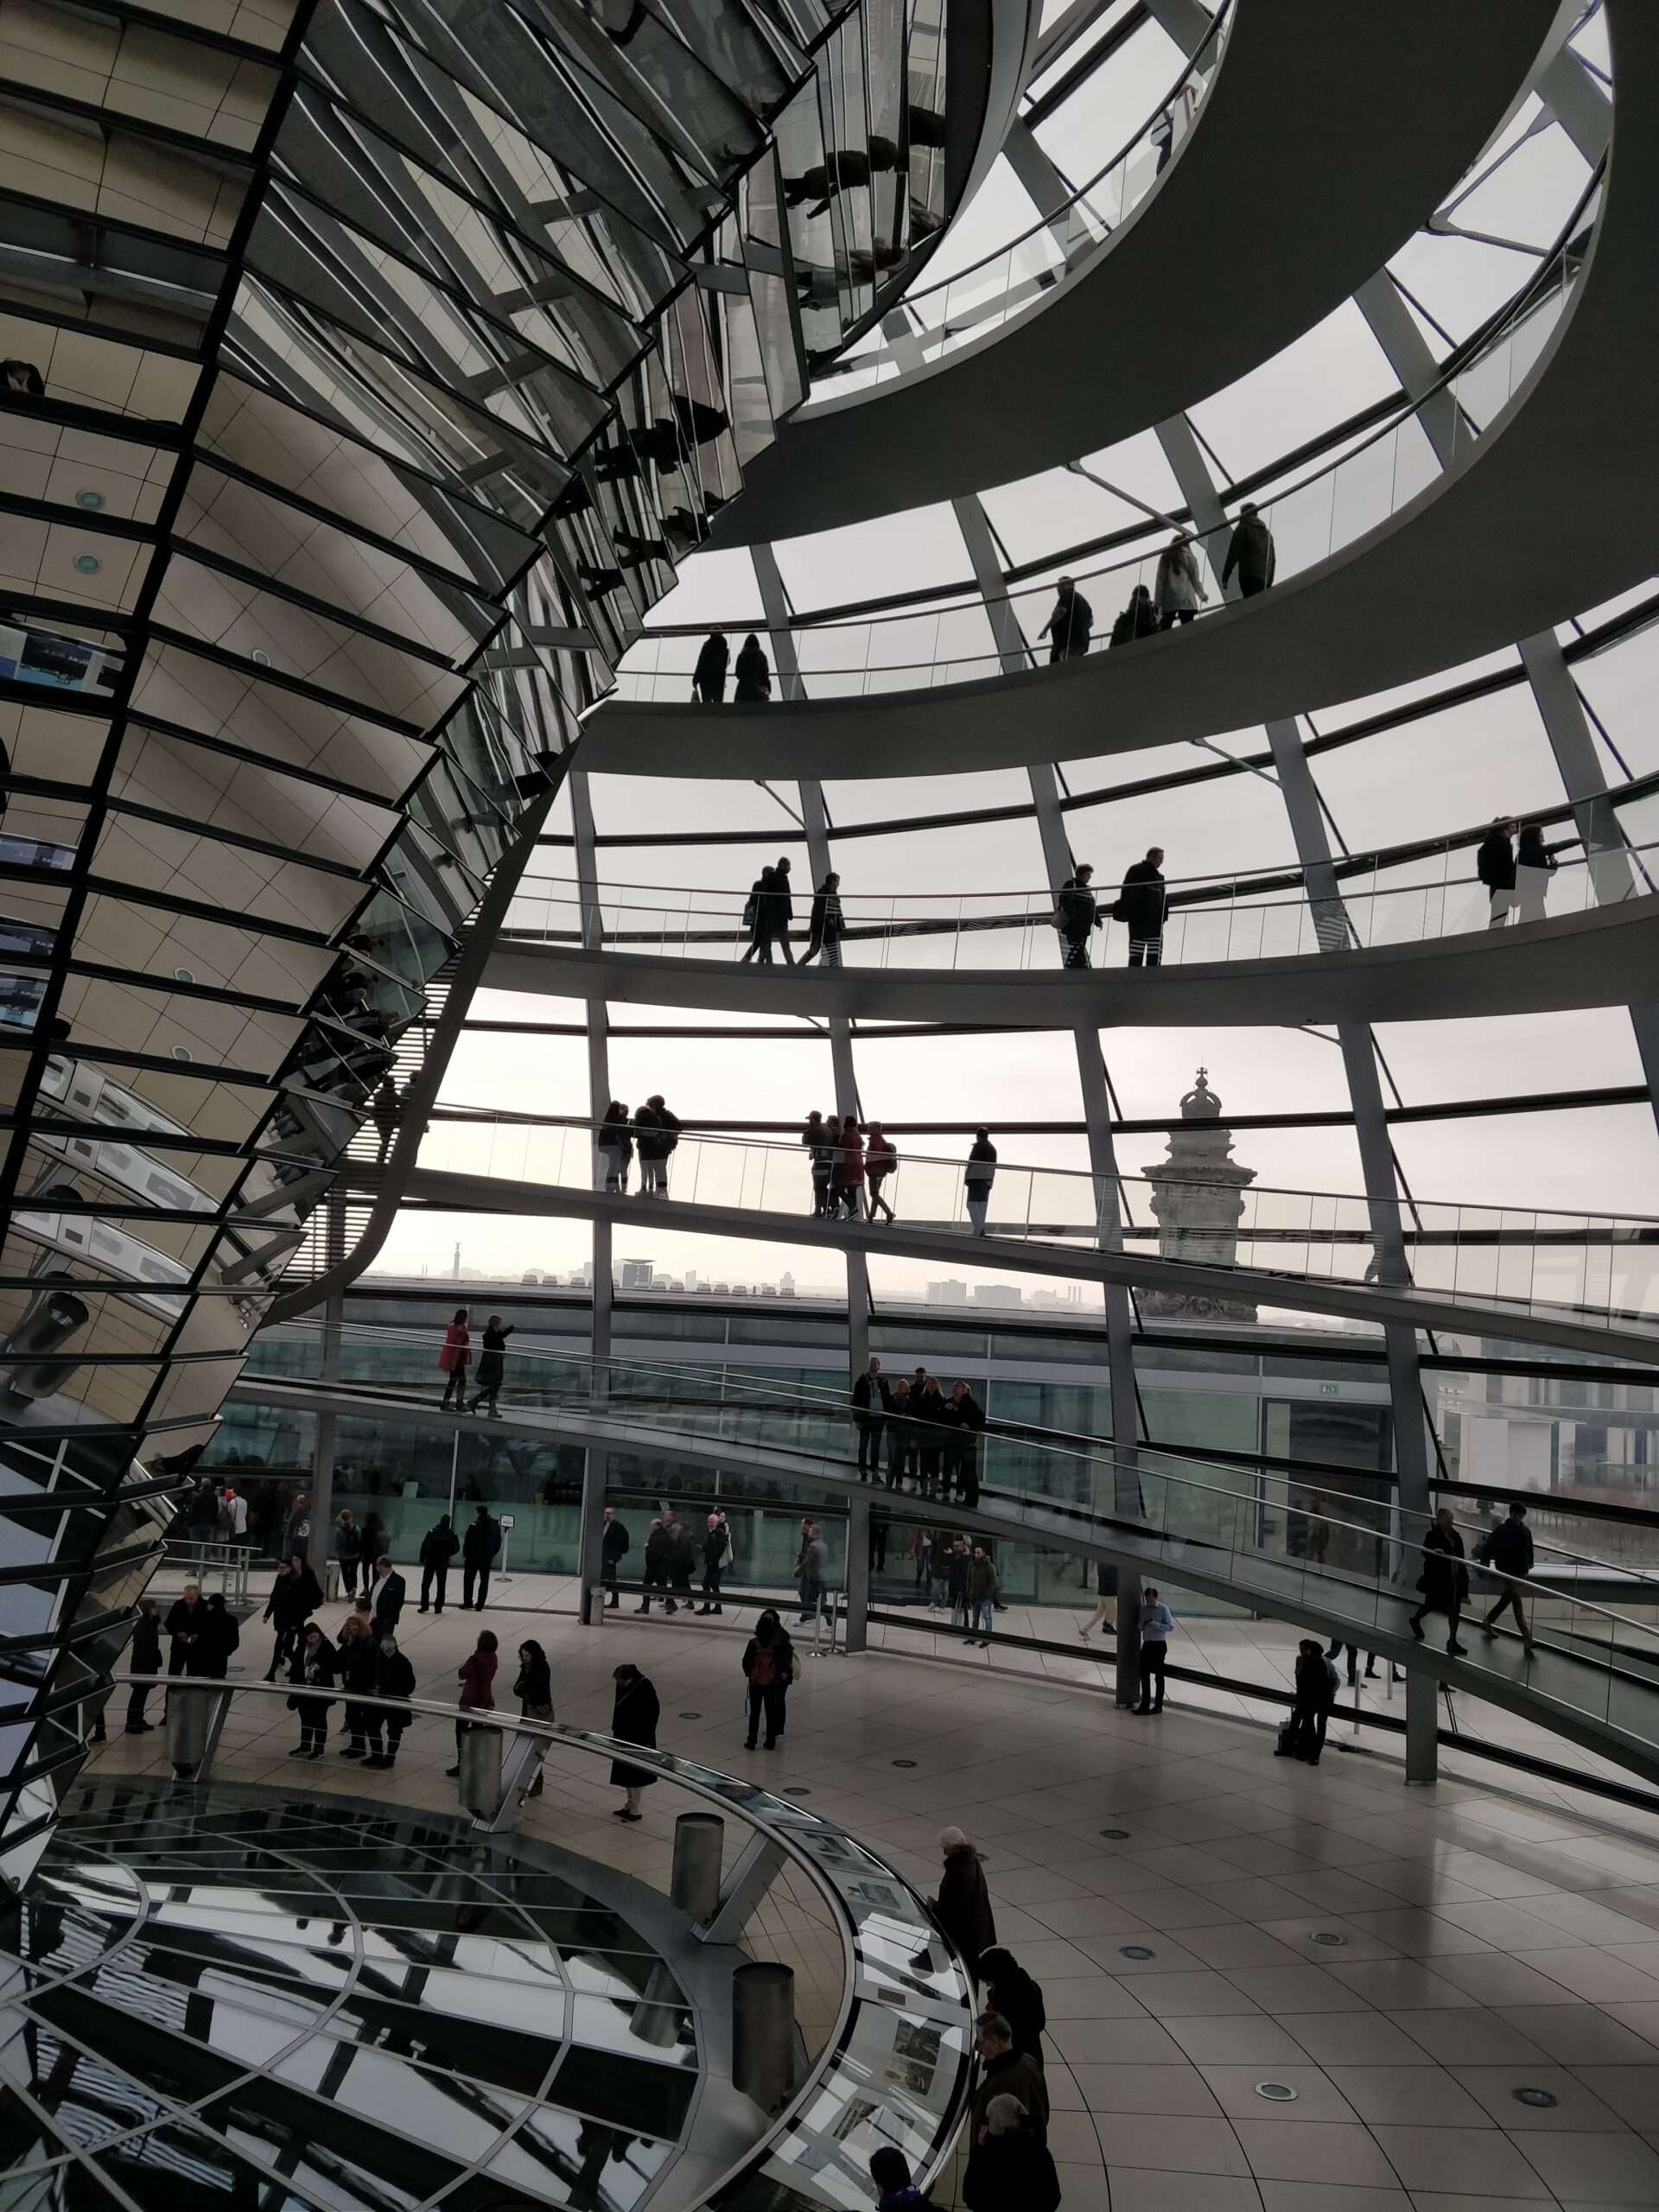 Inside the Reichstag building in Berlin